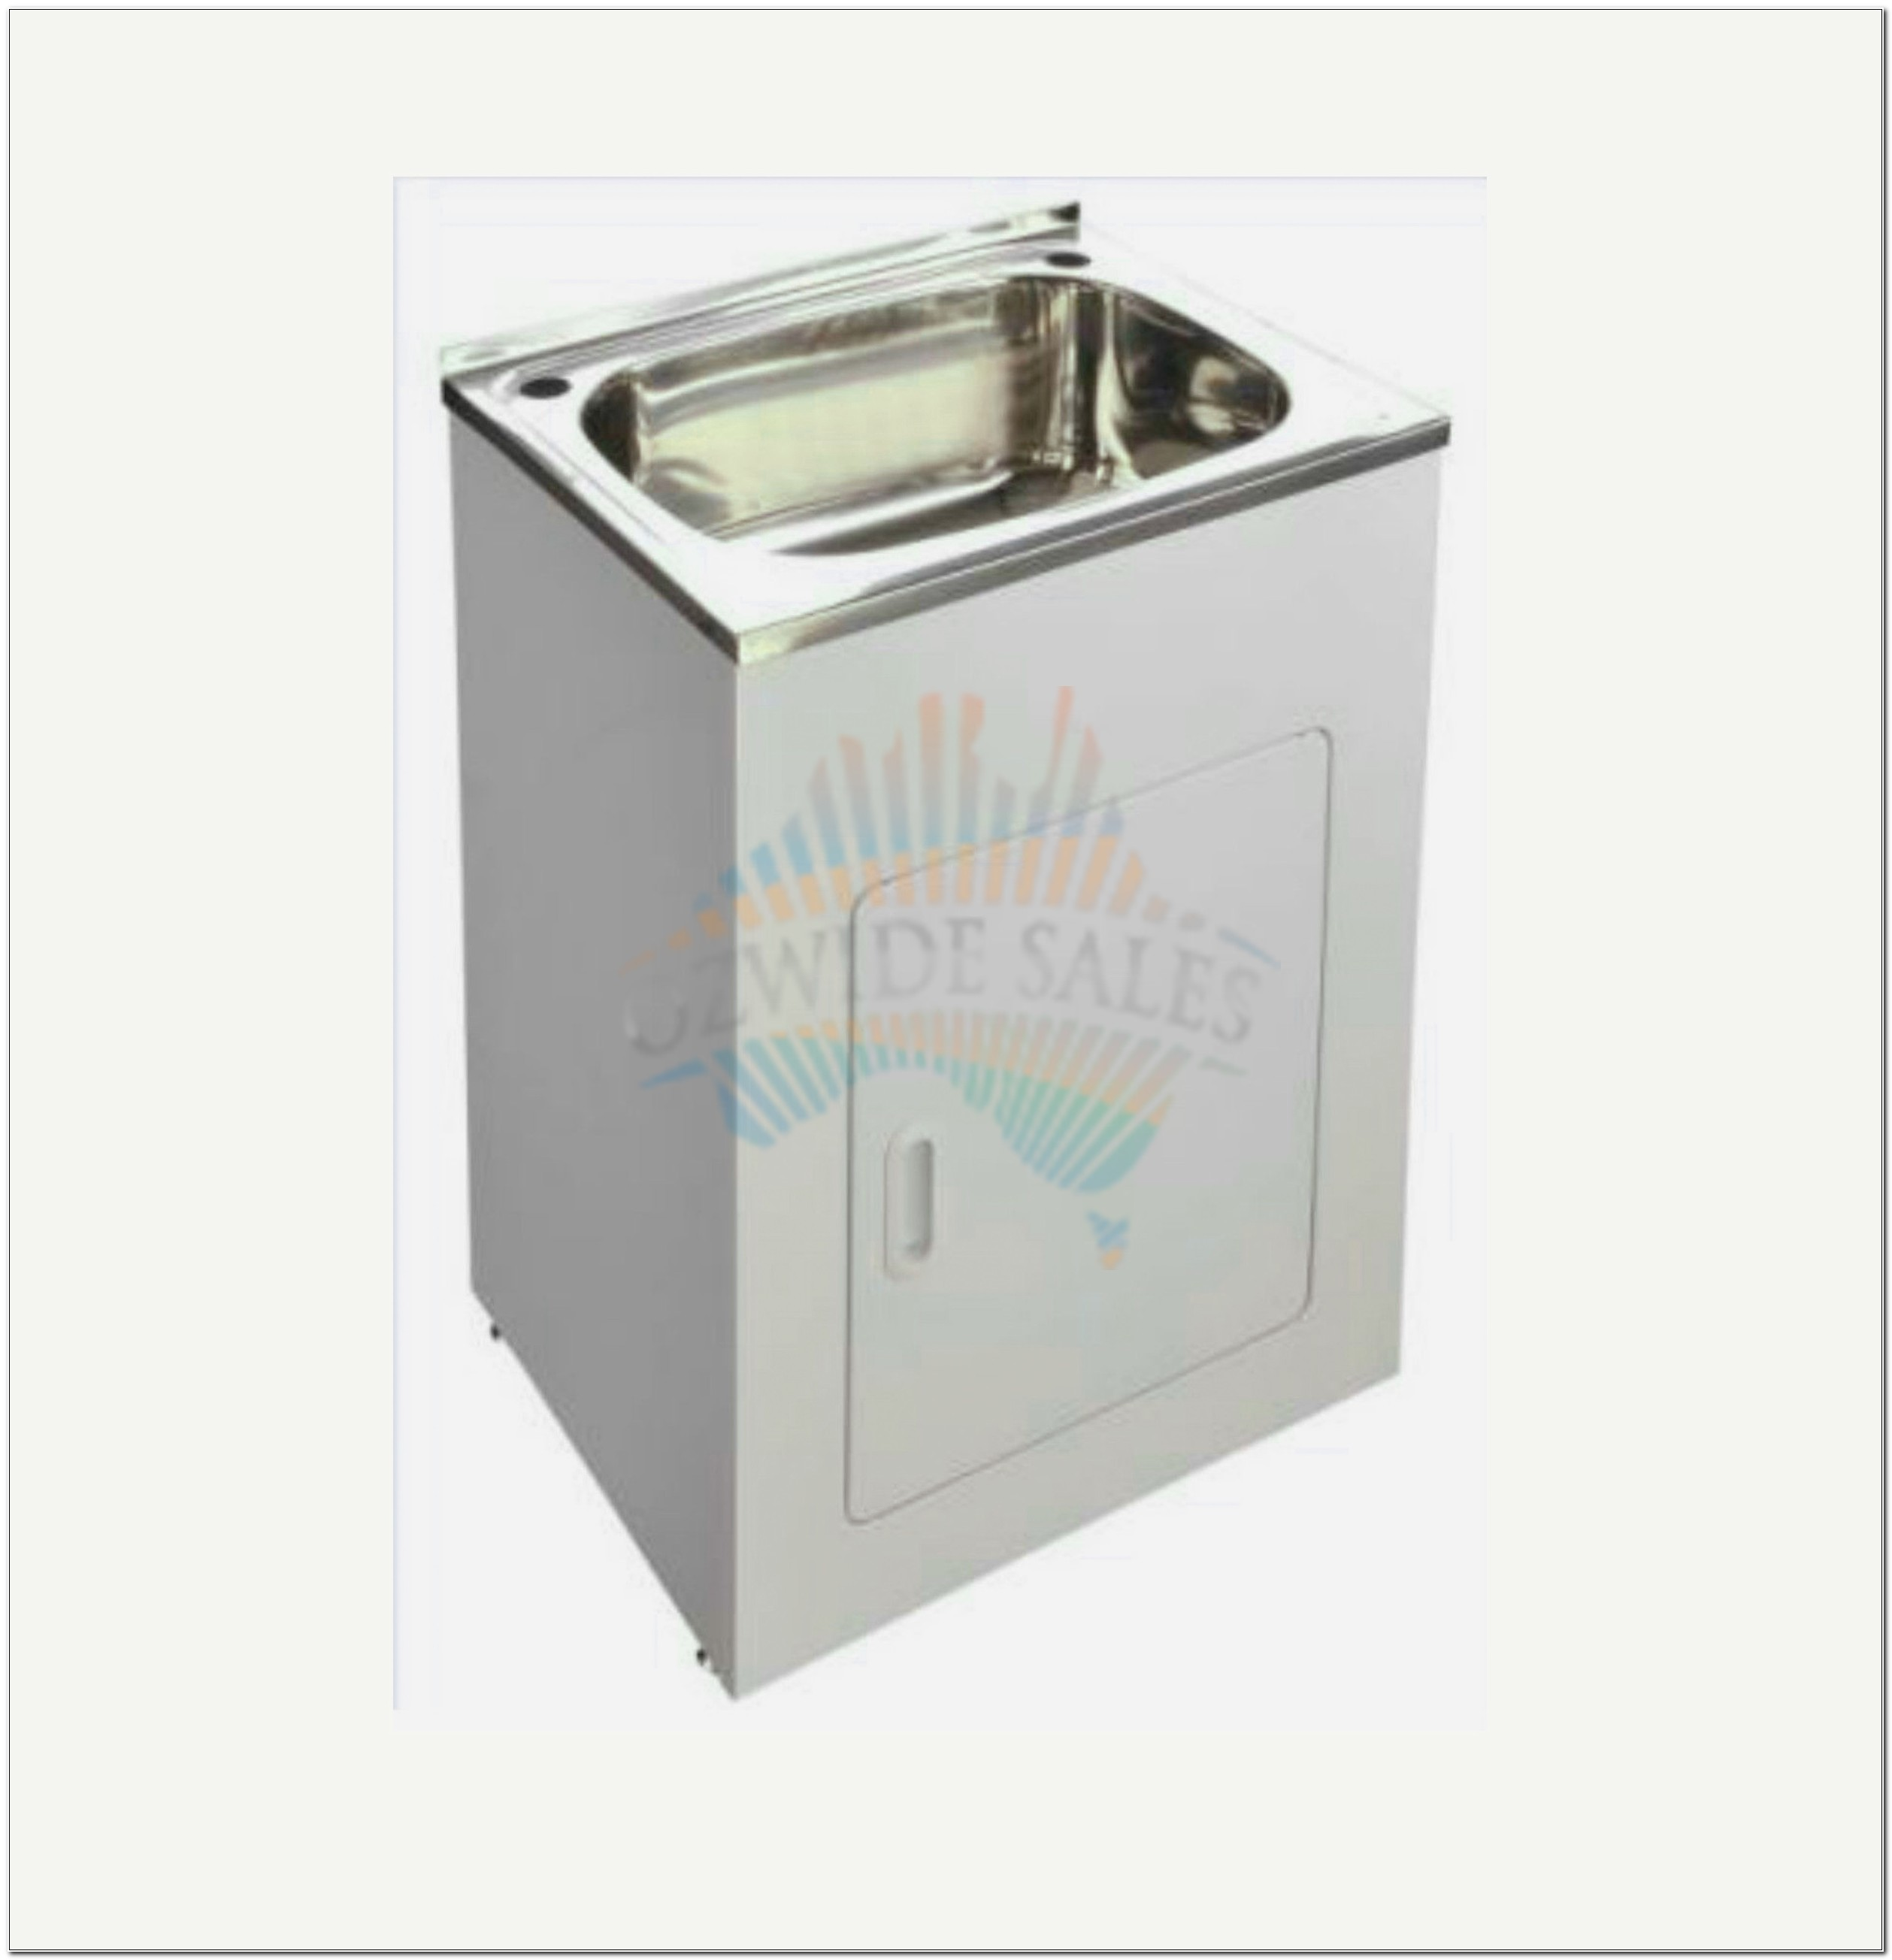 Stainless Steel Sink Cabinet Kit